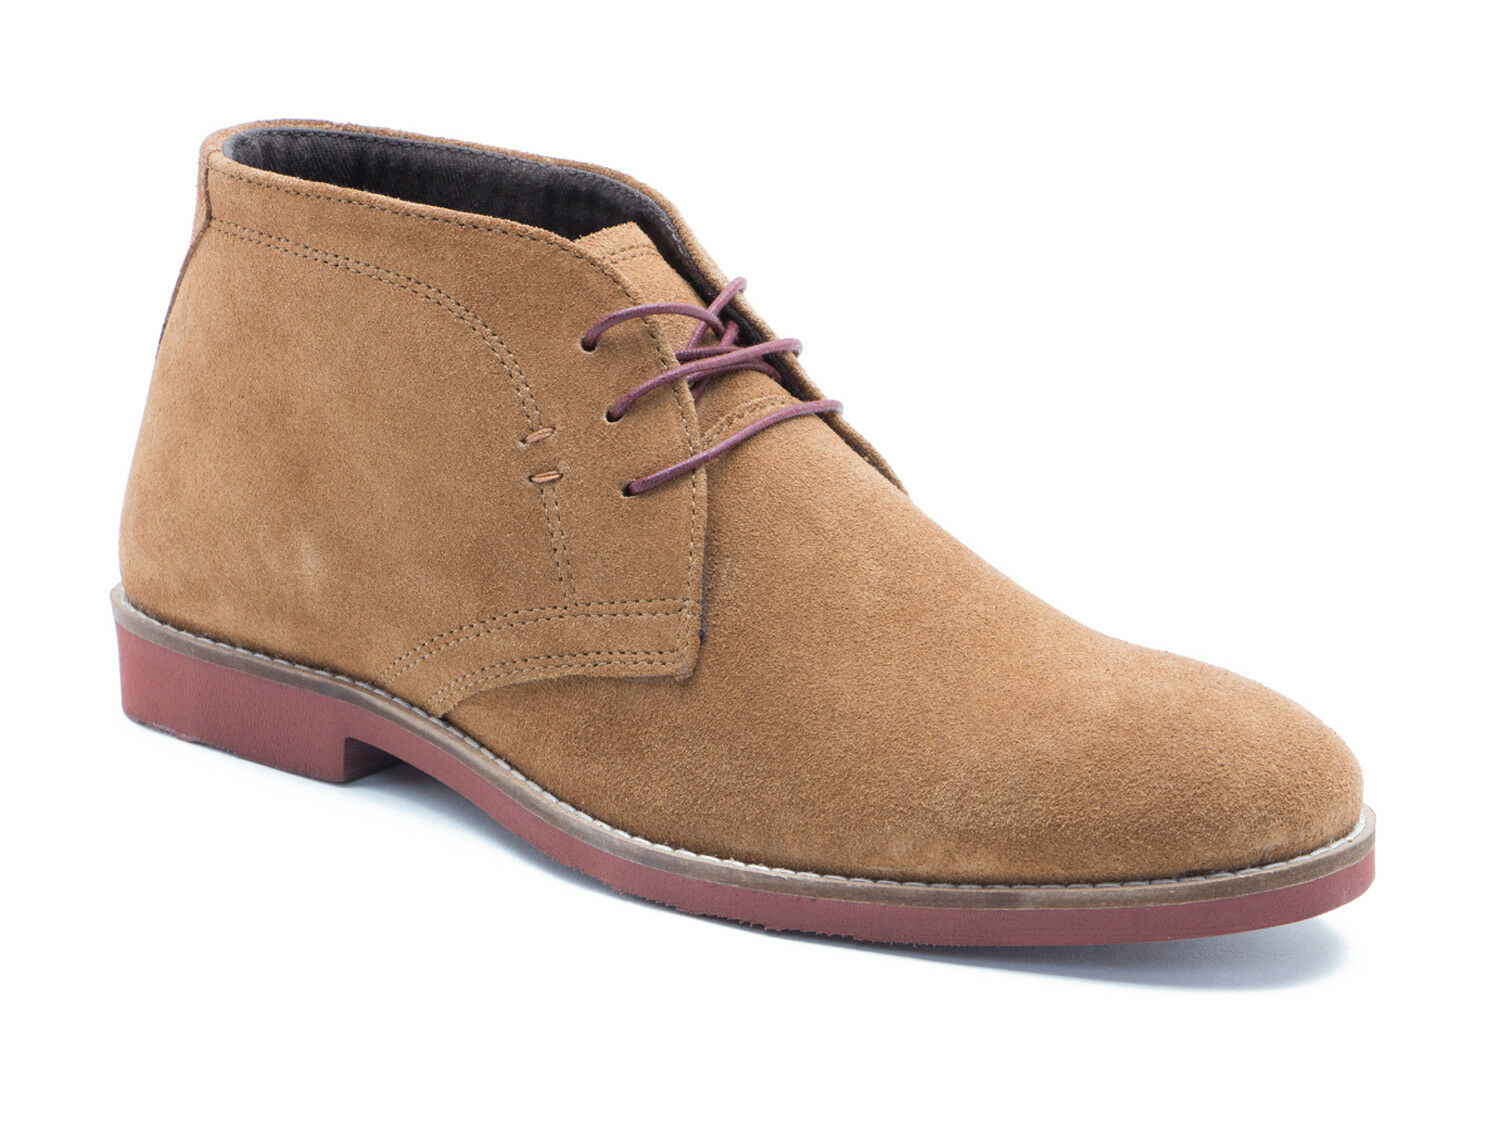 Red Tape Dorney Tan Suede Mens Casual Desert Boots